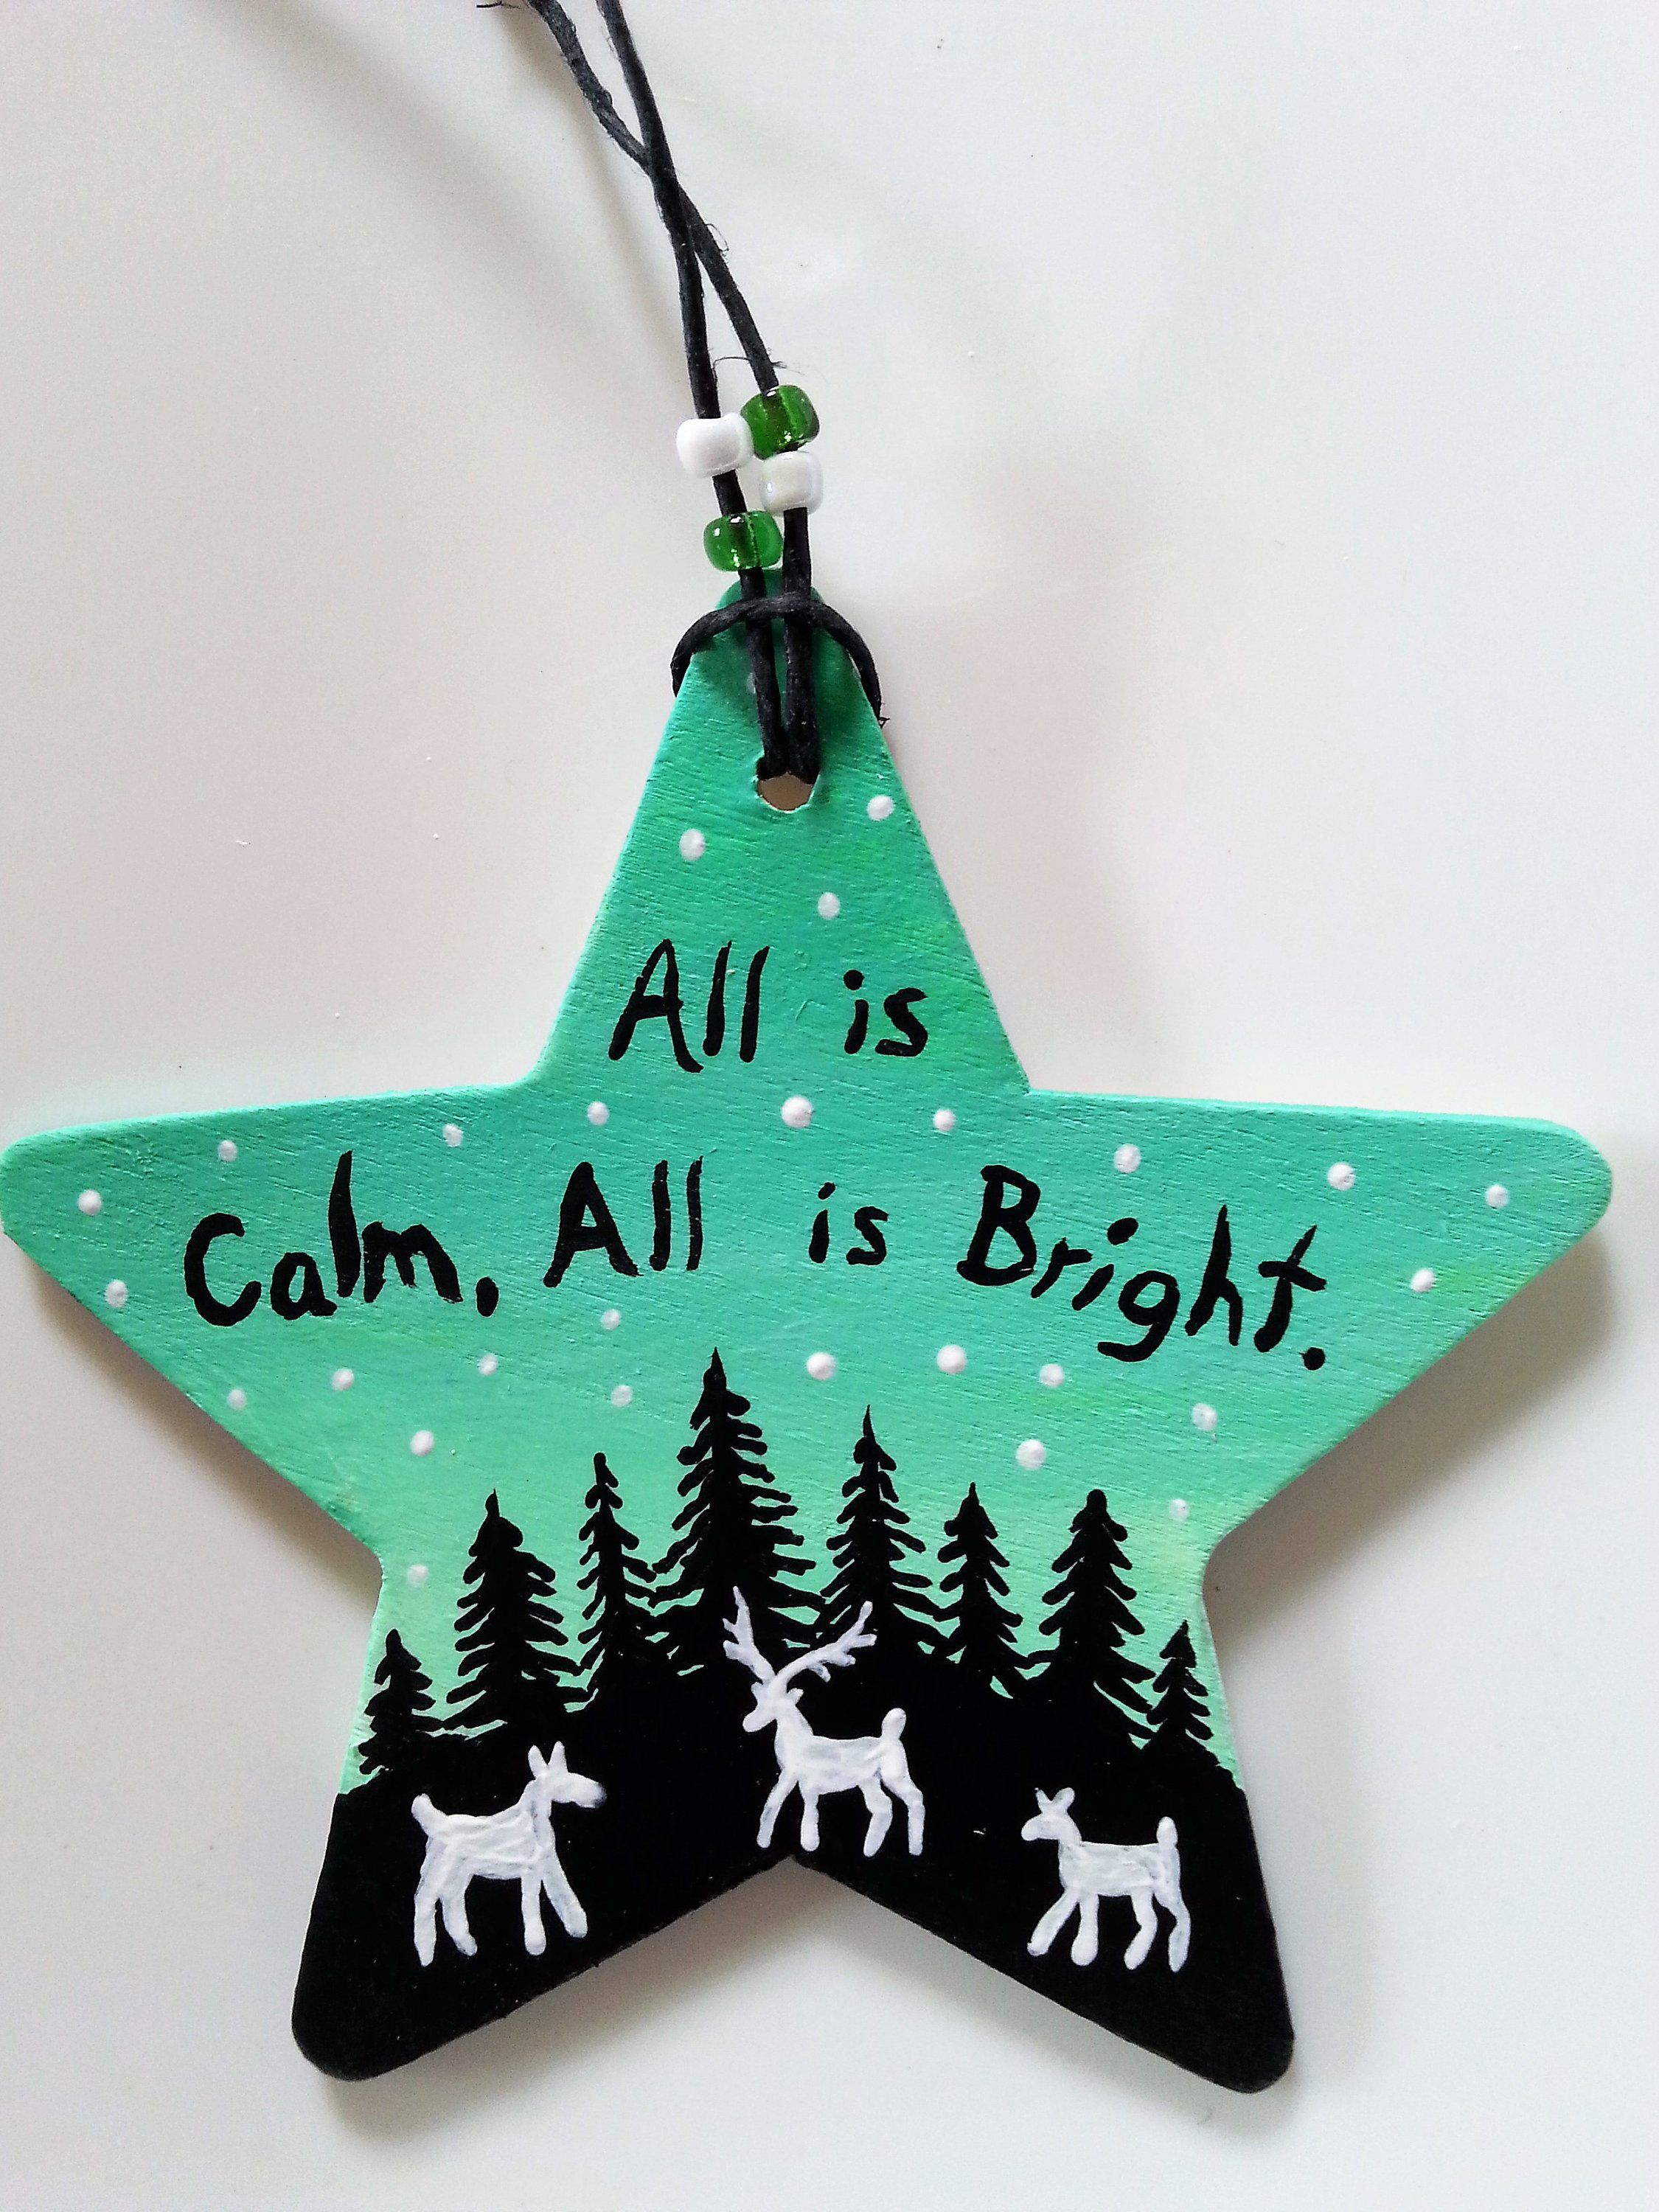 Hand Painted Star Ornament Etsy In 2021 Christmas Ornament Crafts Star Ornament Hand Painted Ornaments